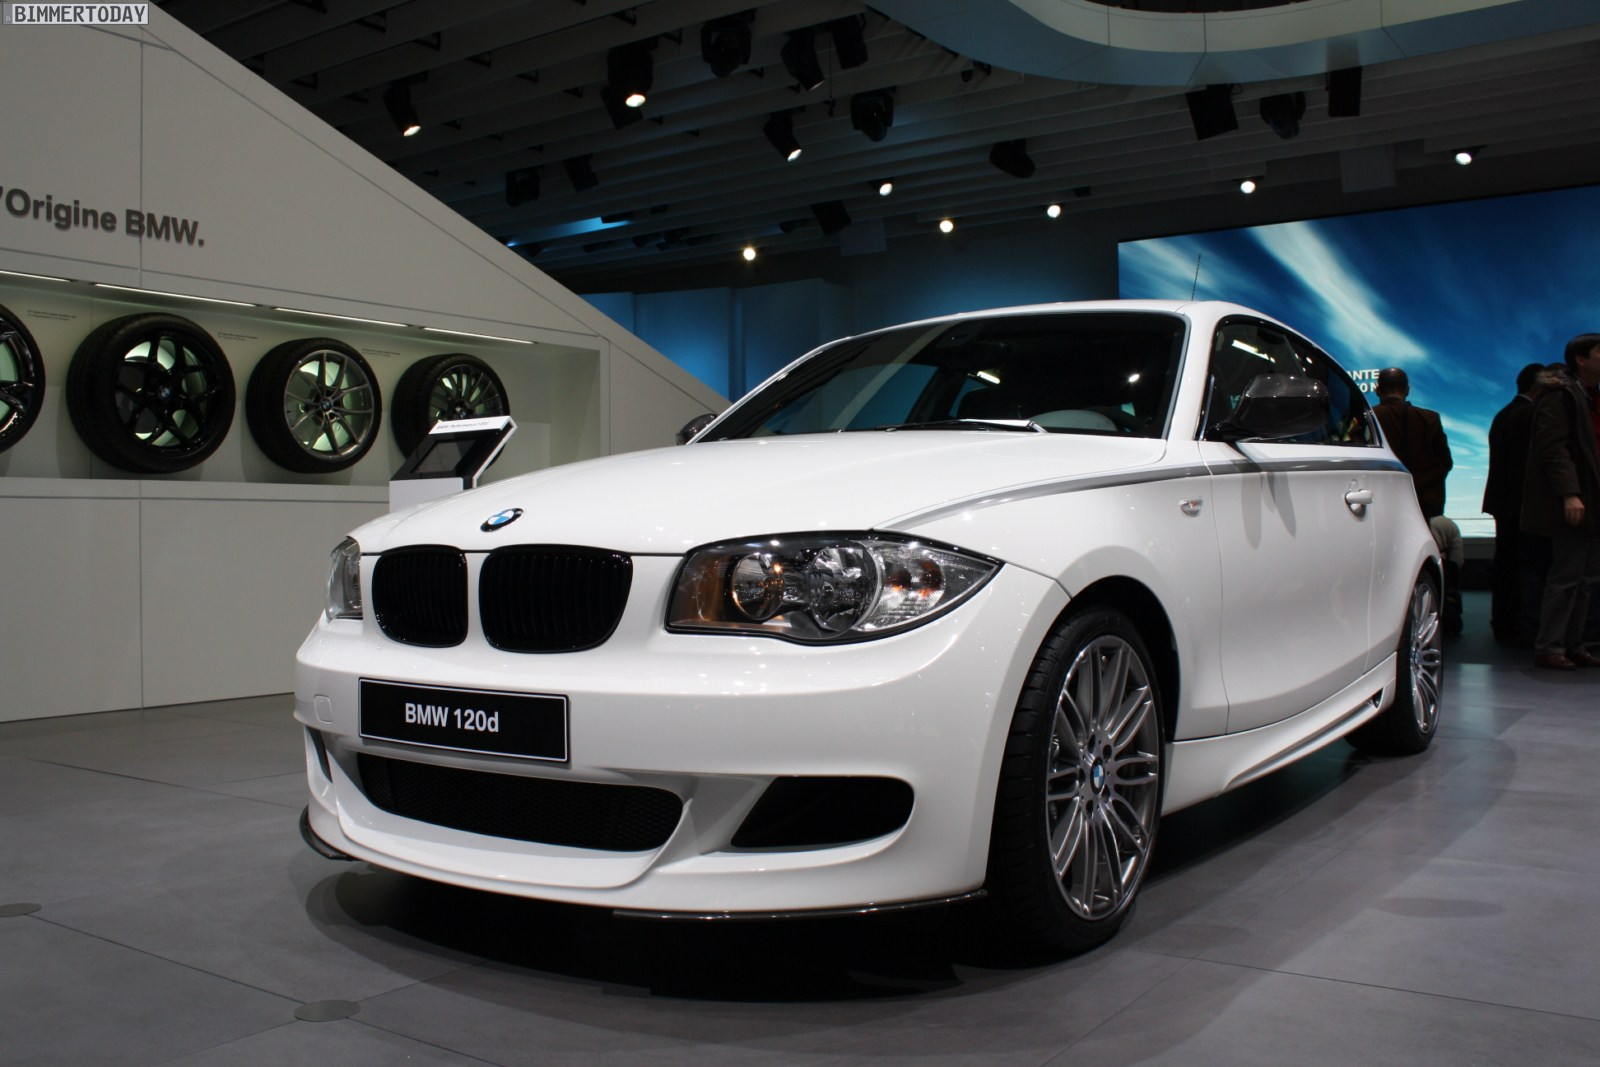 2011 geneva bmw 120d hatchback with bmw performance parts. Black Bedroom Furniture Sets. Home Design Ideas